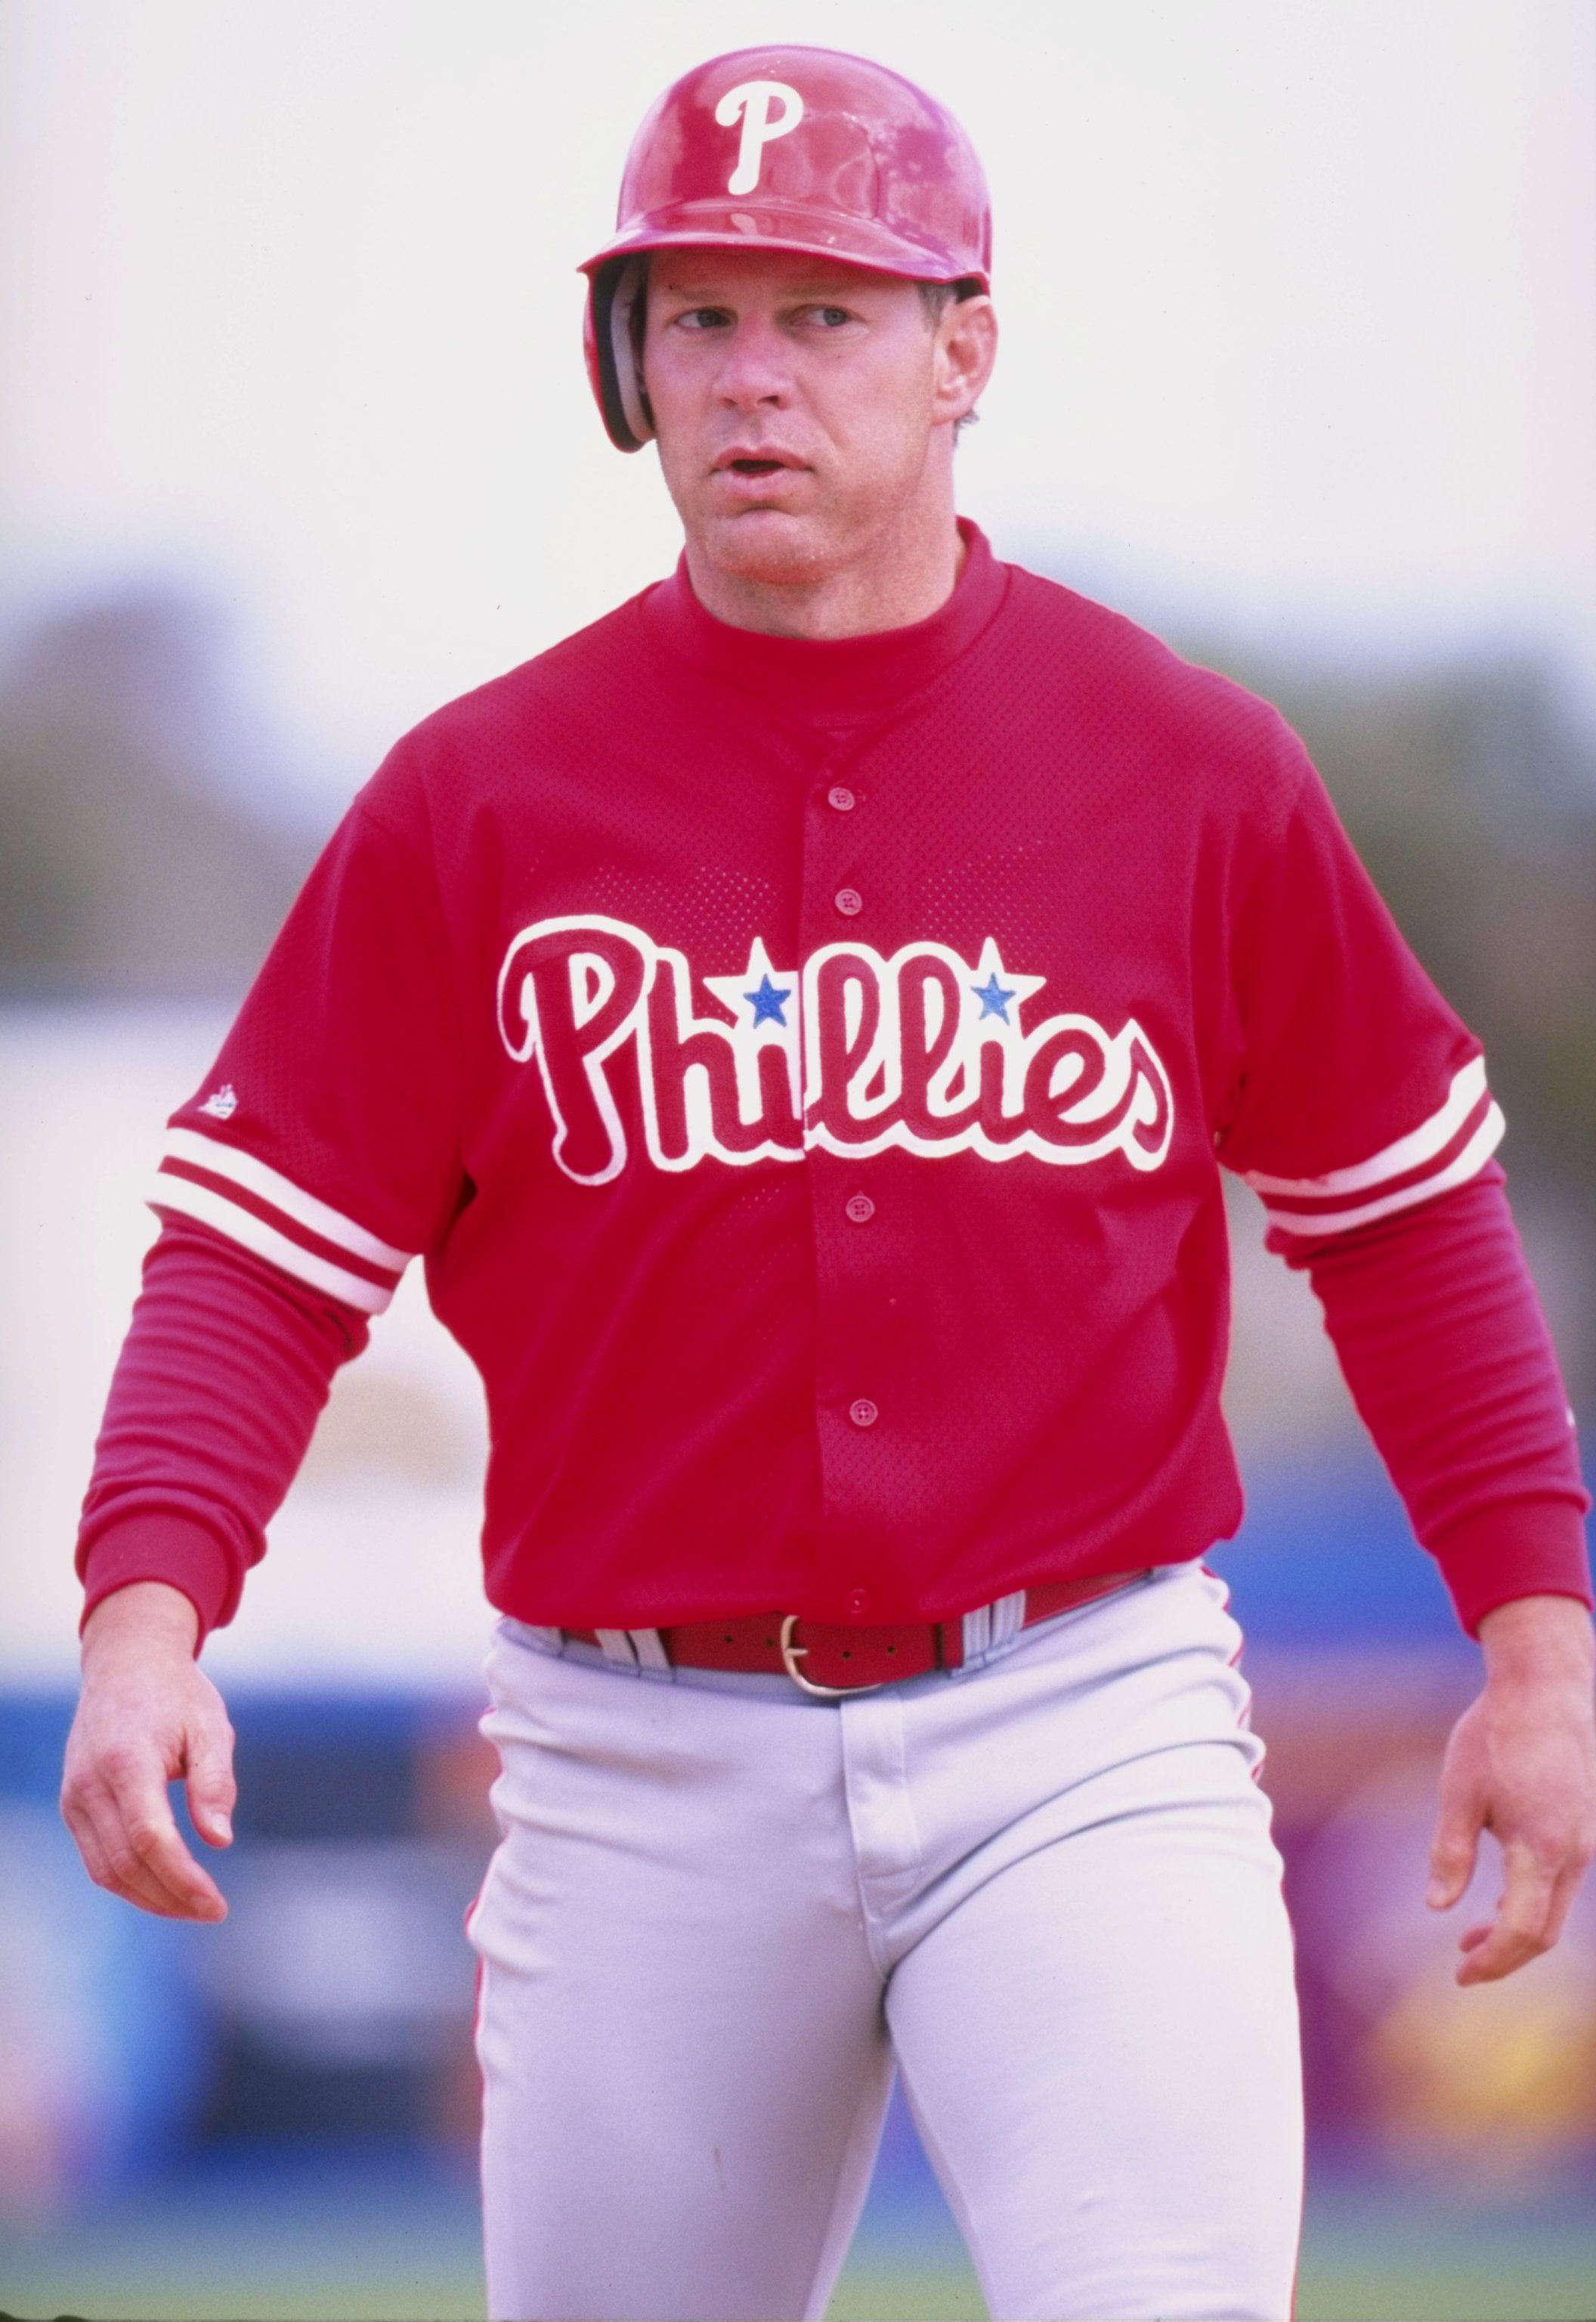 10 Mar 1998:  Outfielder Lenny Dykstra of the Philadelphia Phillies in action during a spring training game against the Toronto Blue Jays at Grant Field in Dunedin, Florida.  The Phillies won the game, 14-3. Mandatory Credit: Tom Hauck  /Allsport